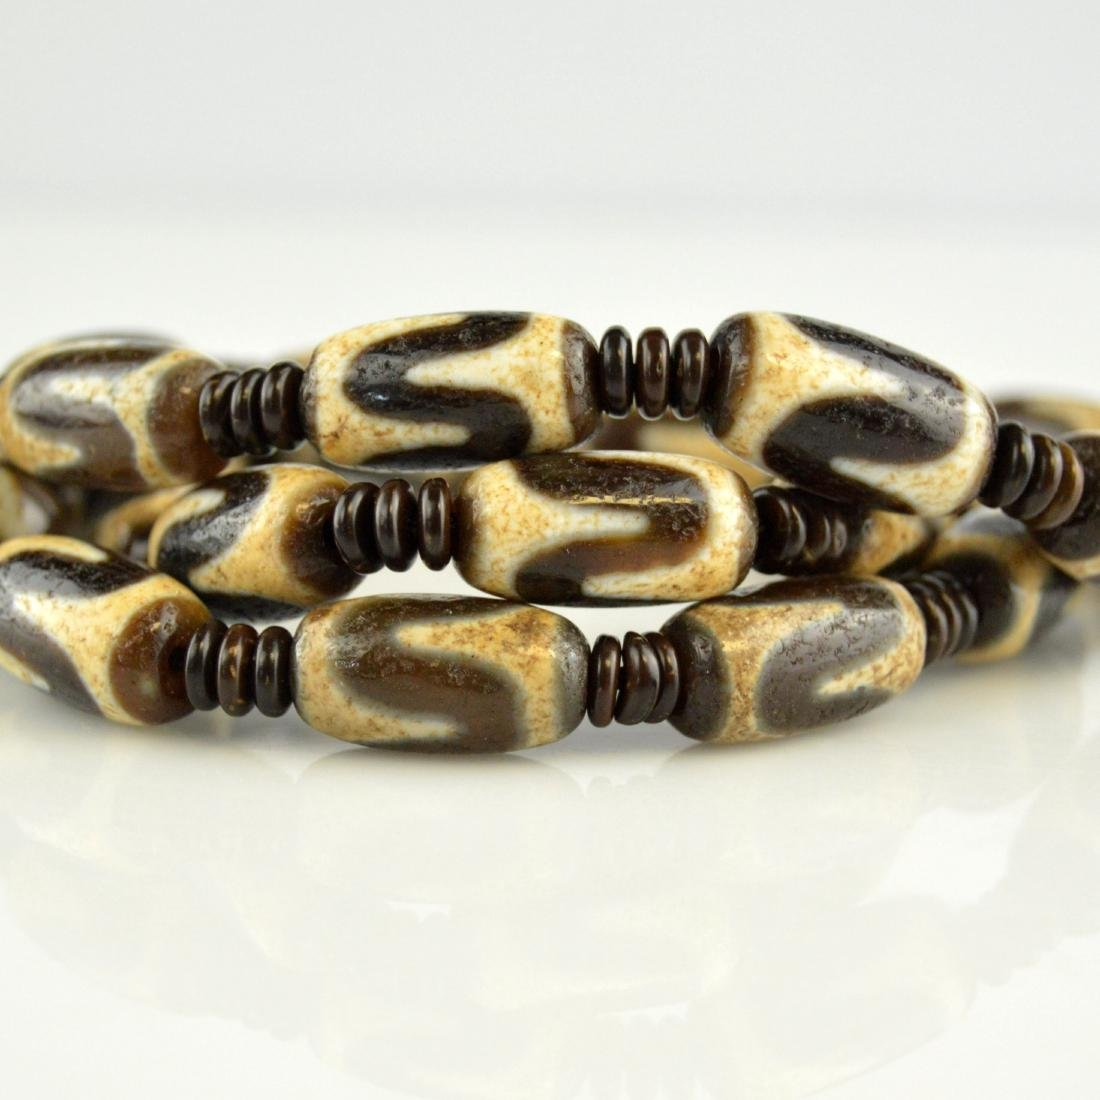 Tiger Tooth Dzi Bed Necklace - 4